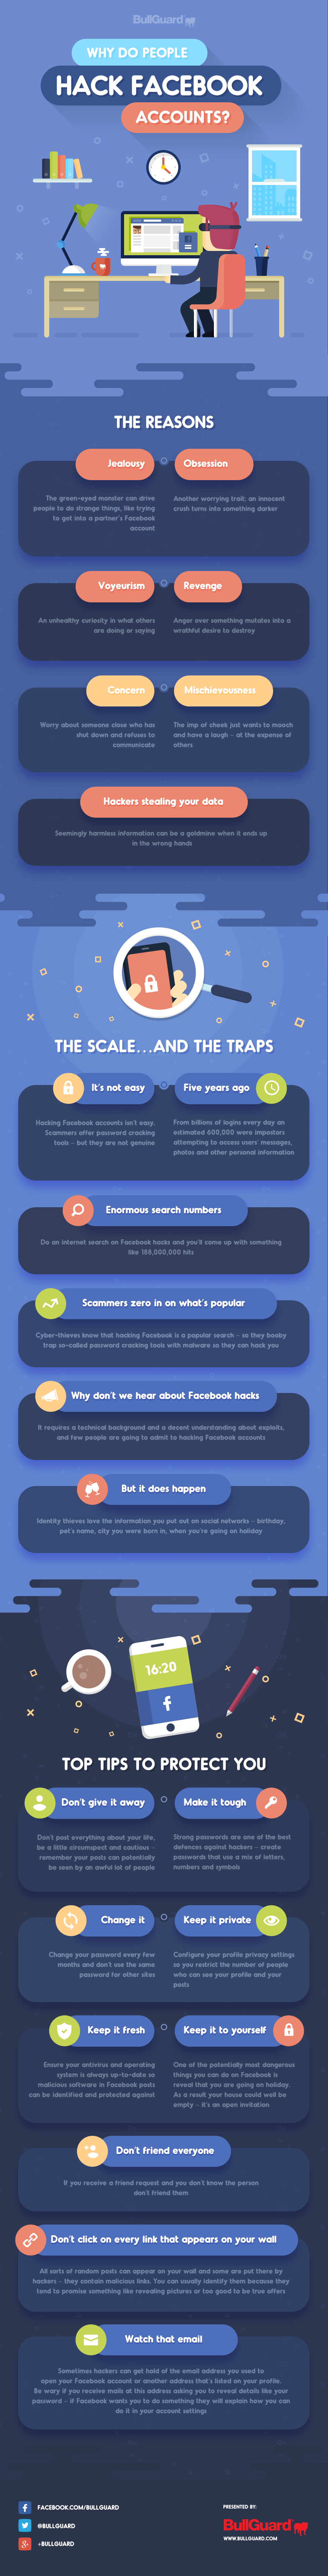 Why Do People Hack Facebook Accounts? #infographic